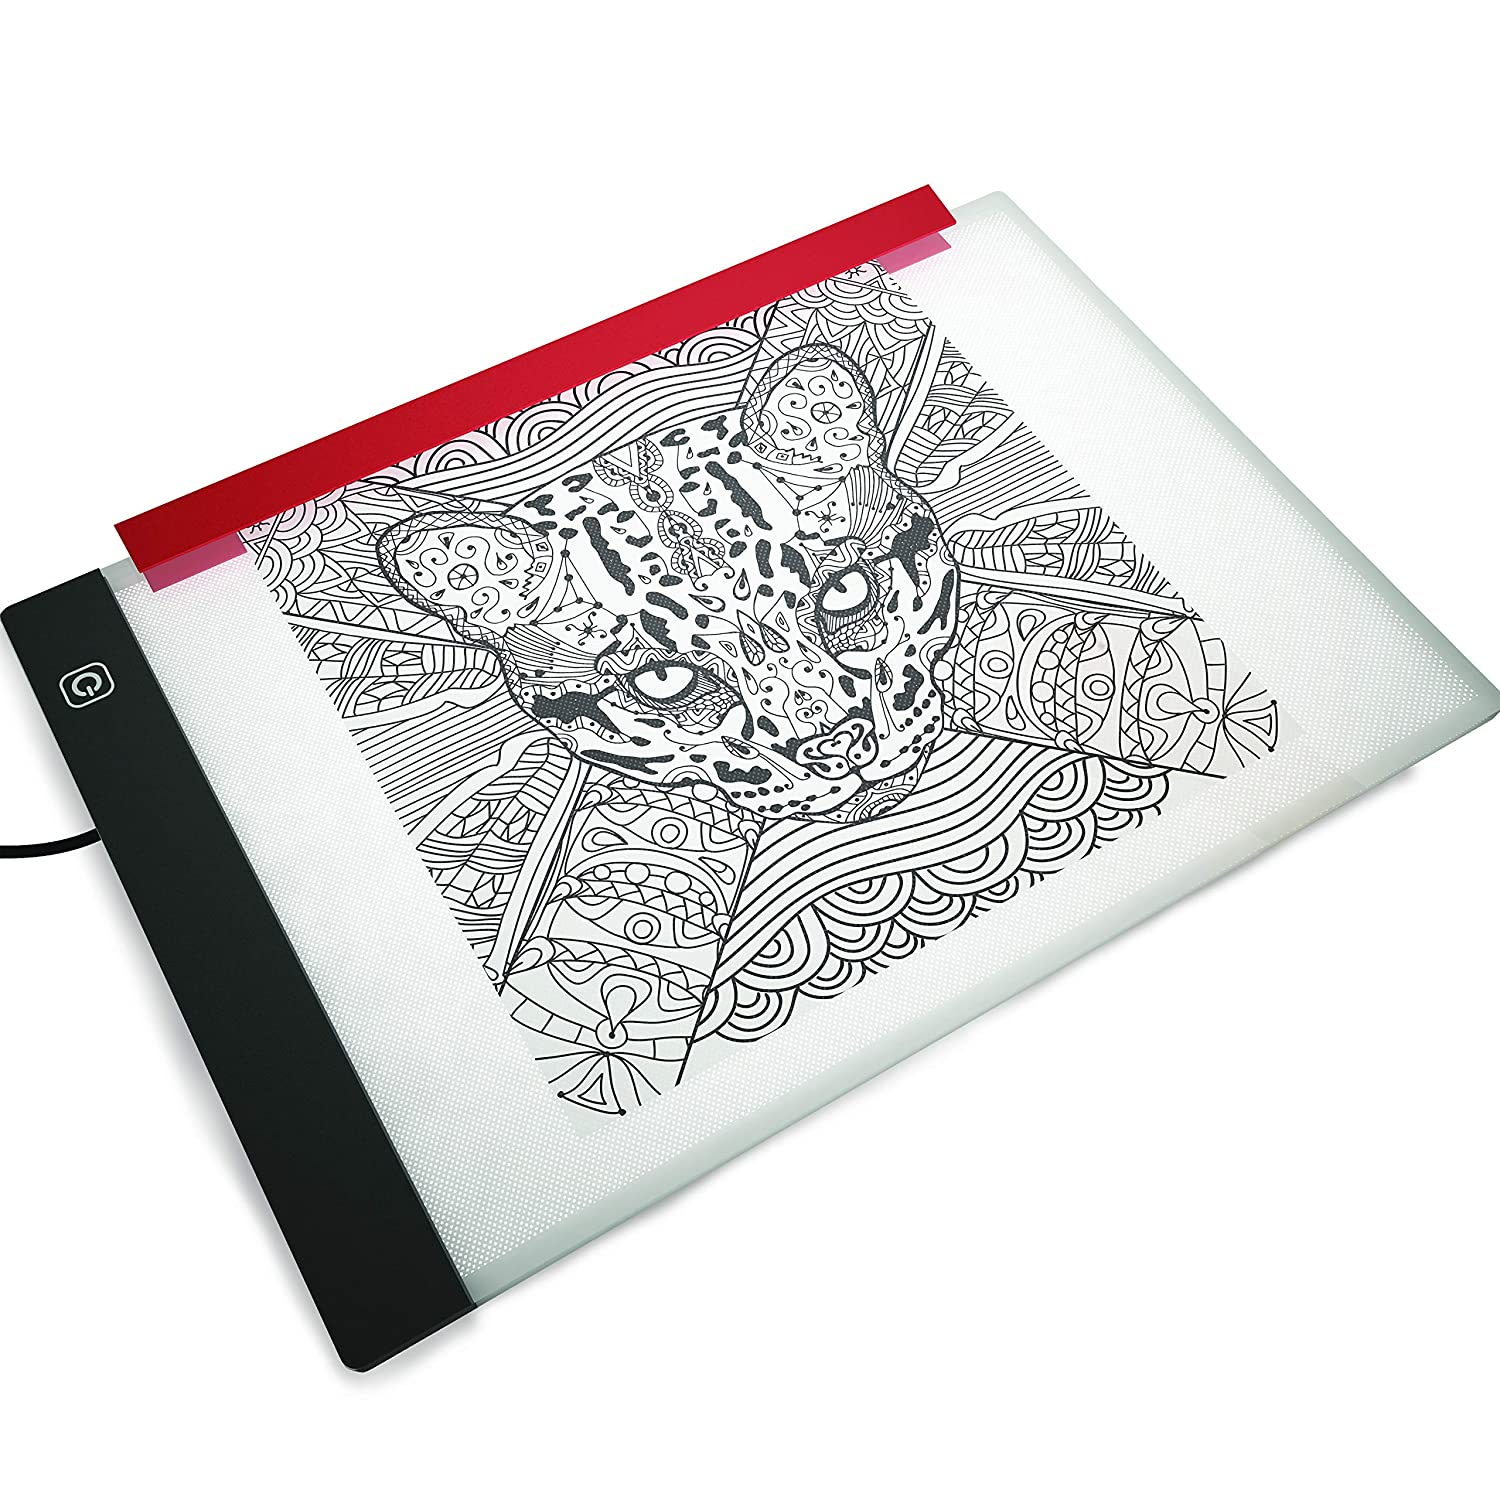 Light Box for Drawing and Tracing by Illuminati - Ultra Thin Acrylic Led  Light Table - Comes with Filter to Prevent Eye Fatigue Plus Tracing Paper  and